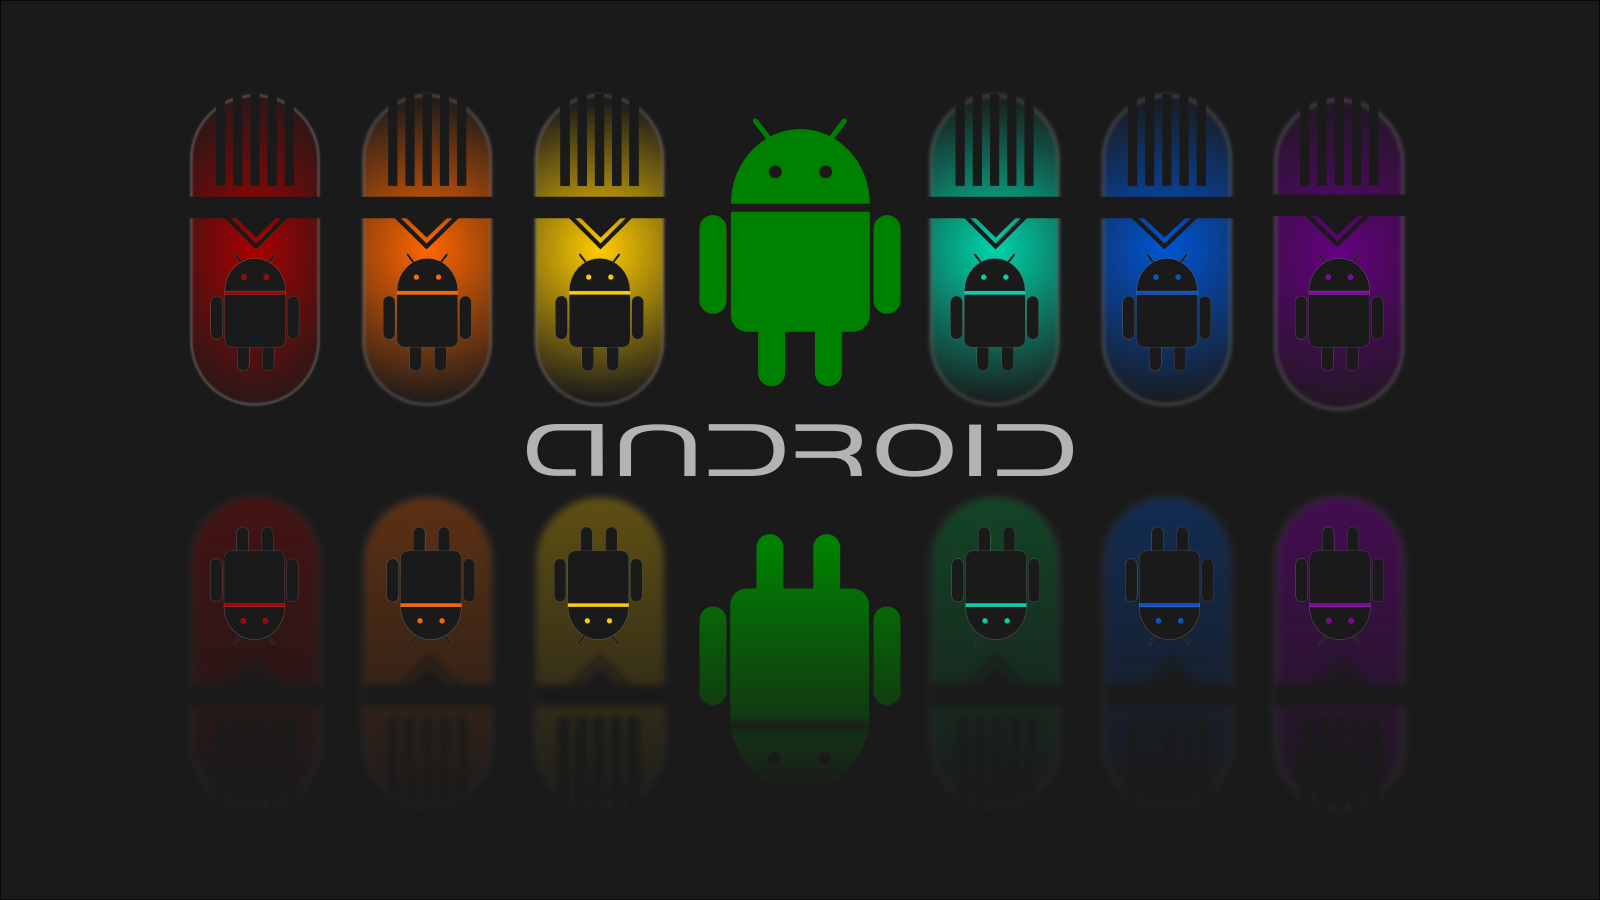 Android control remoto